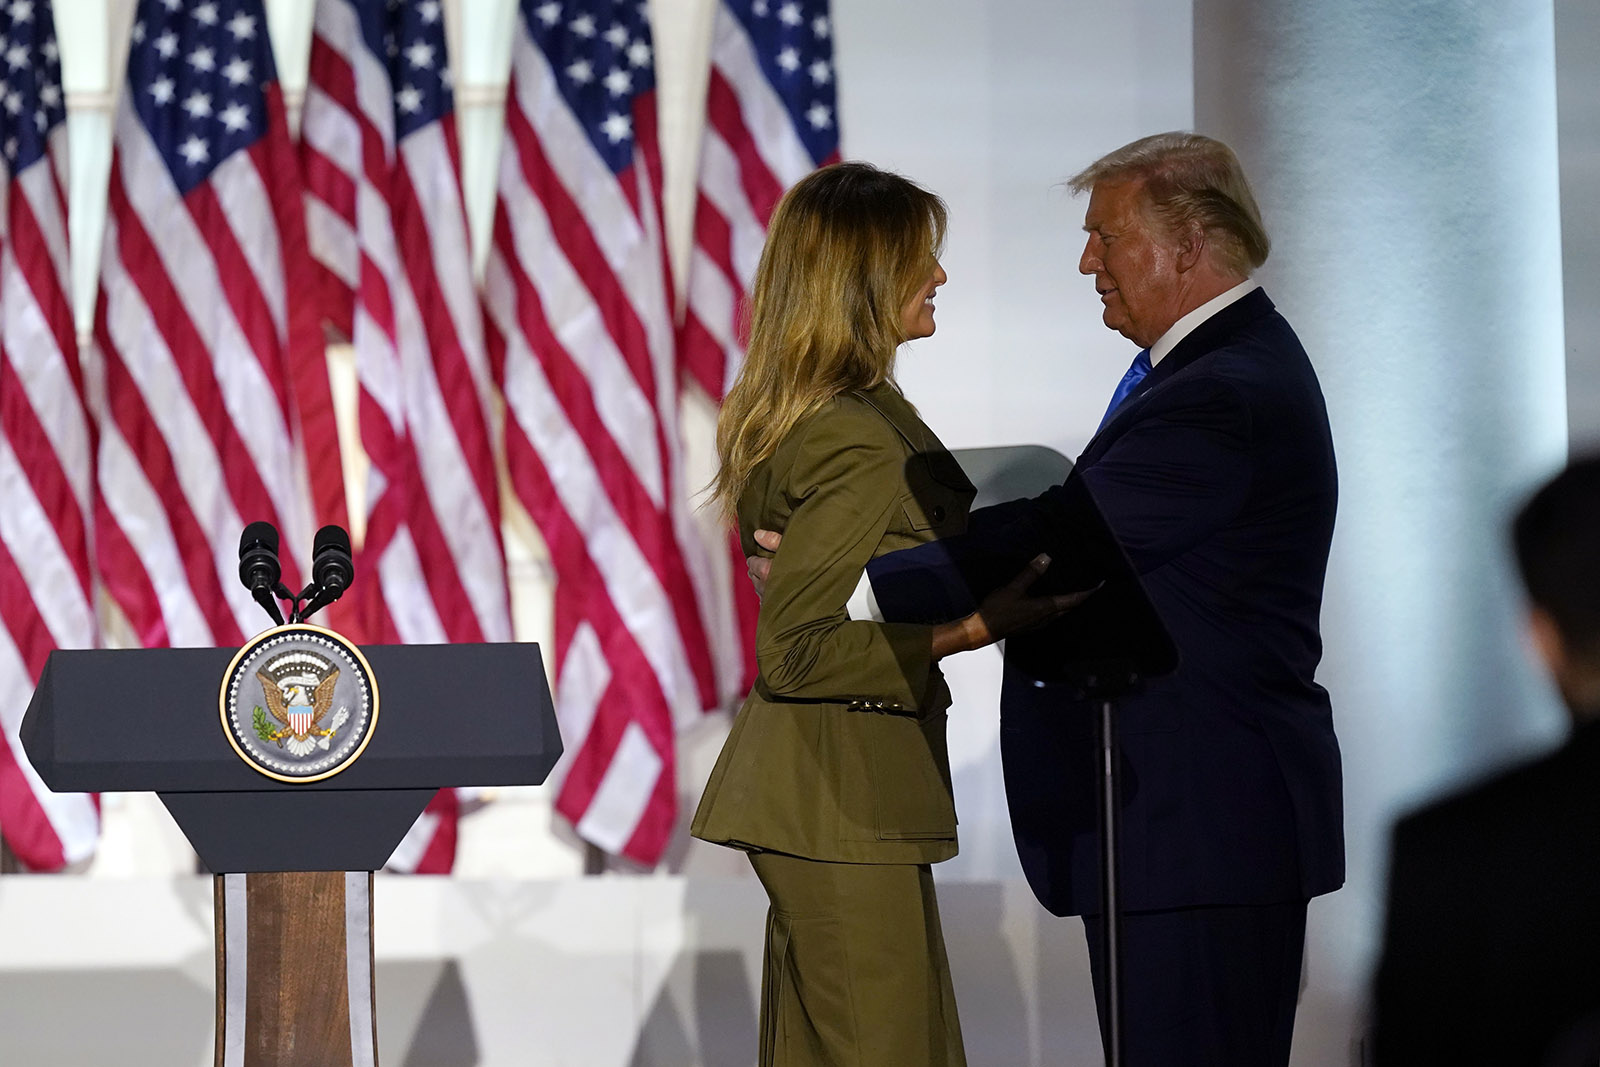 President Donald Trump joins first lady Melania Trump on stage after her speech to the 2020 Republican National Convention from the Rose Garden of the White House, on Tuesday in Washington.